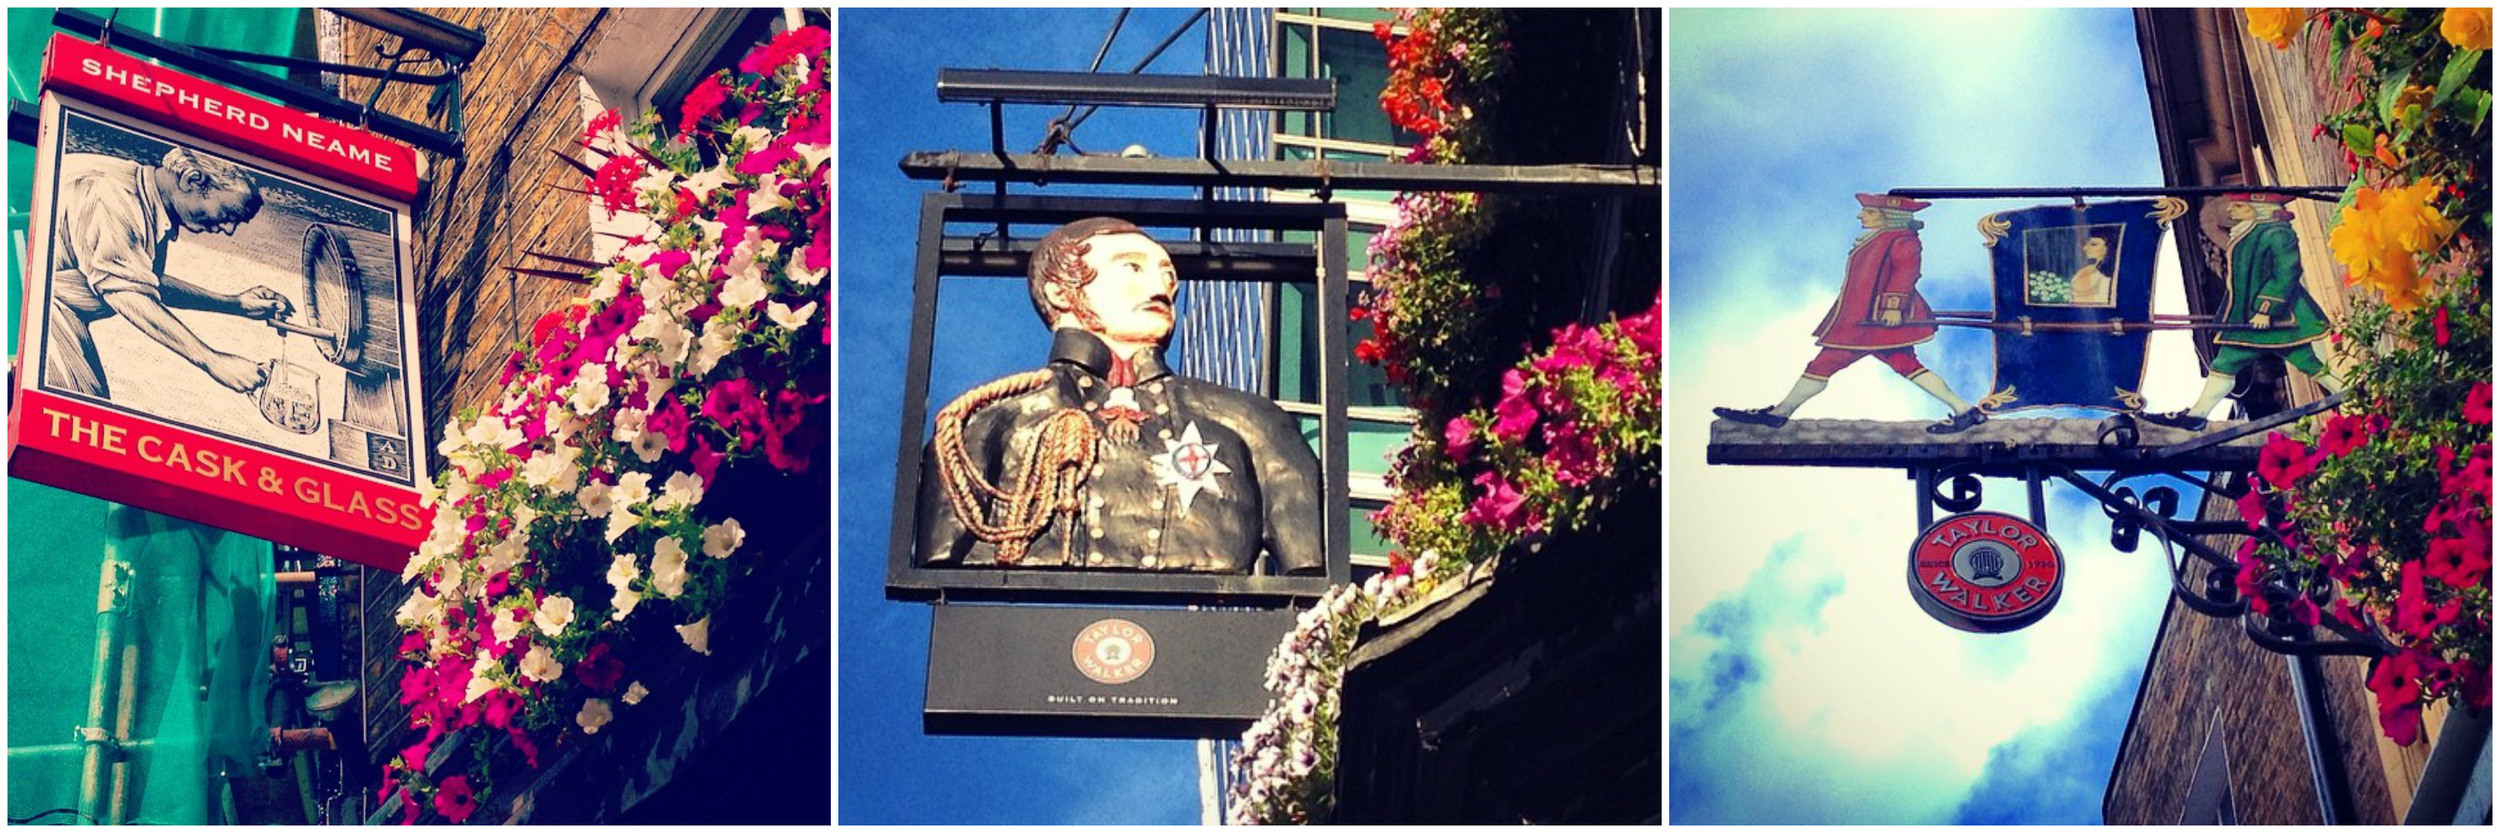 Some of the cute pub signs in Westminster, St James's Park and Victoria. (Images: Eileen Hsieh)